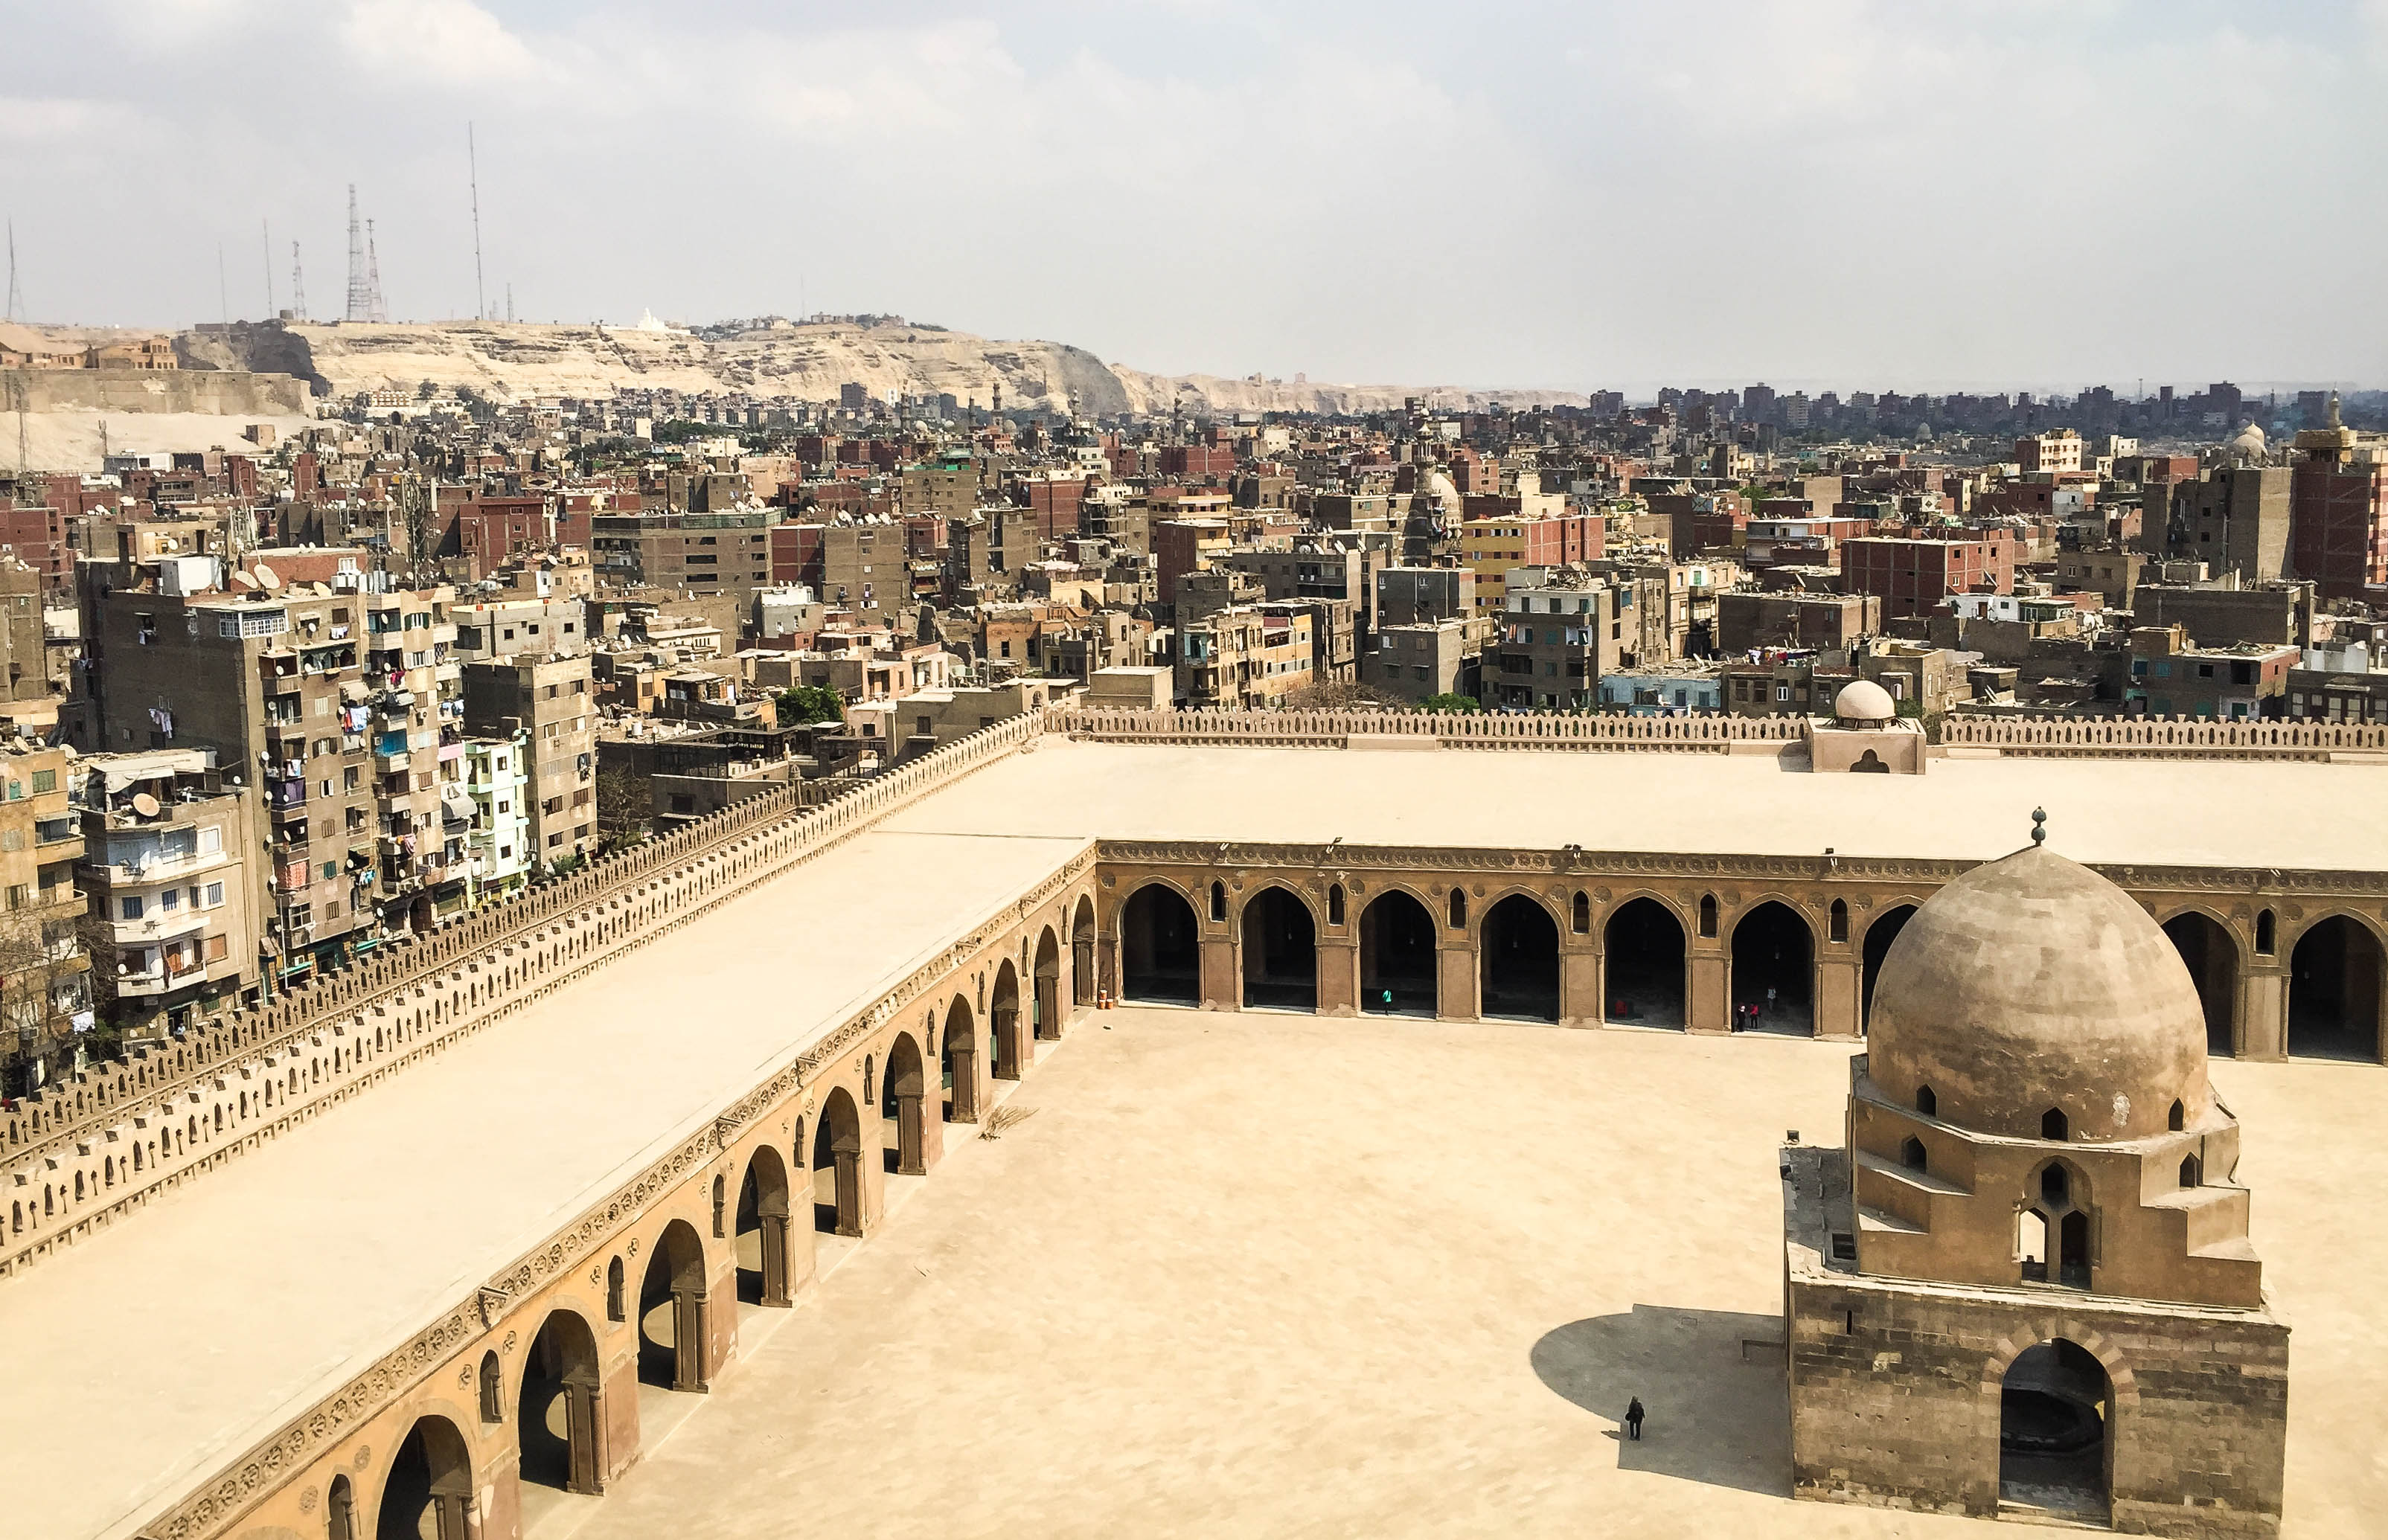 View of city density from Mosque of Ibn Tulun, Cairo, Egypt